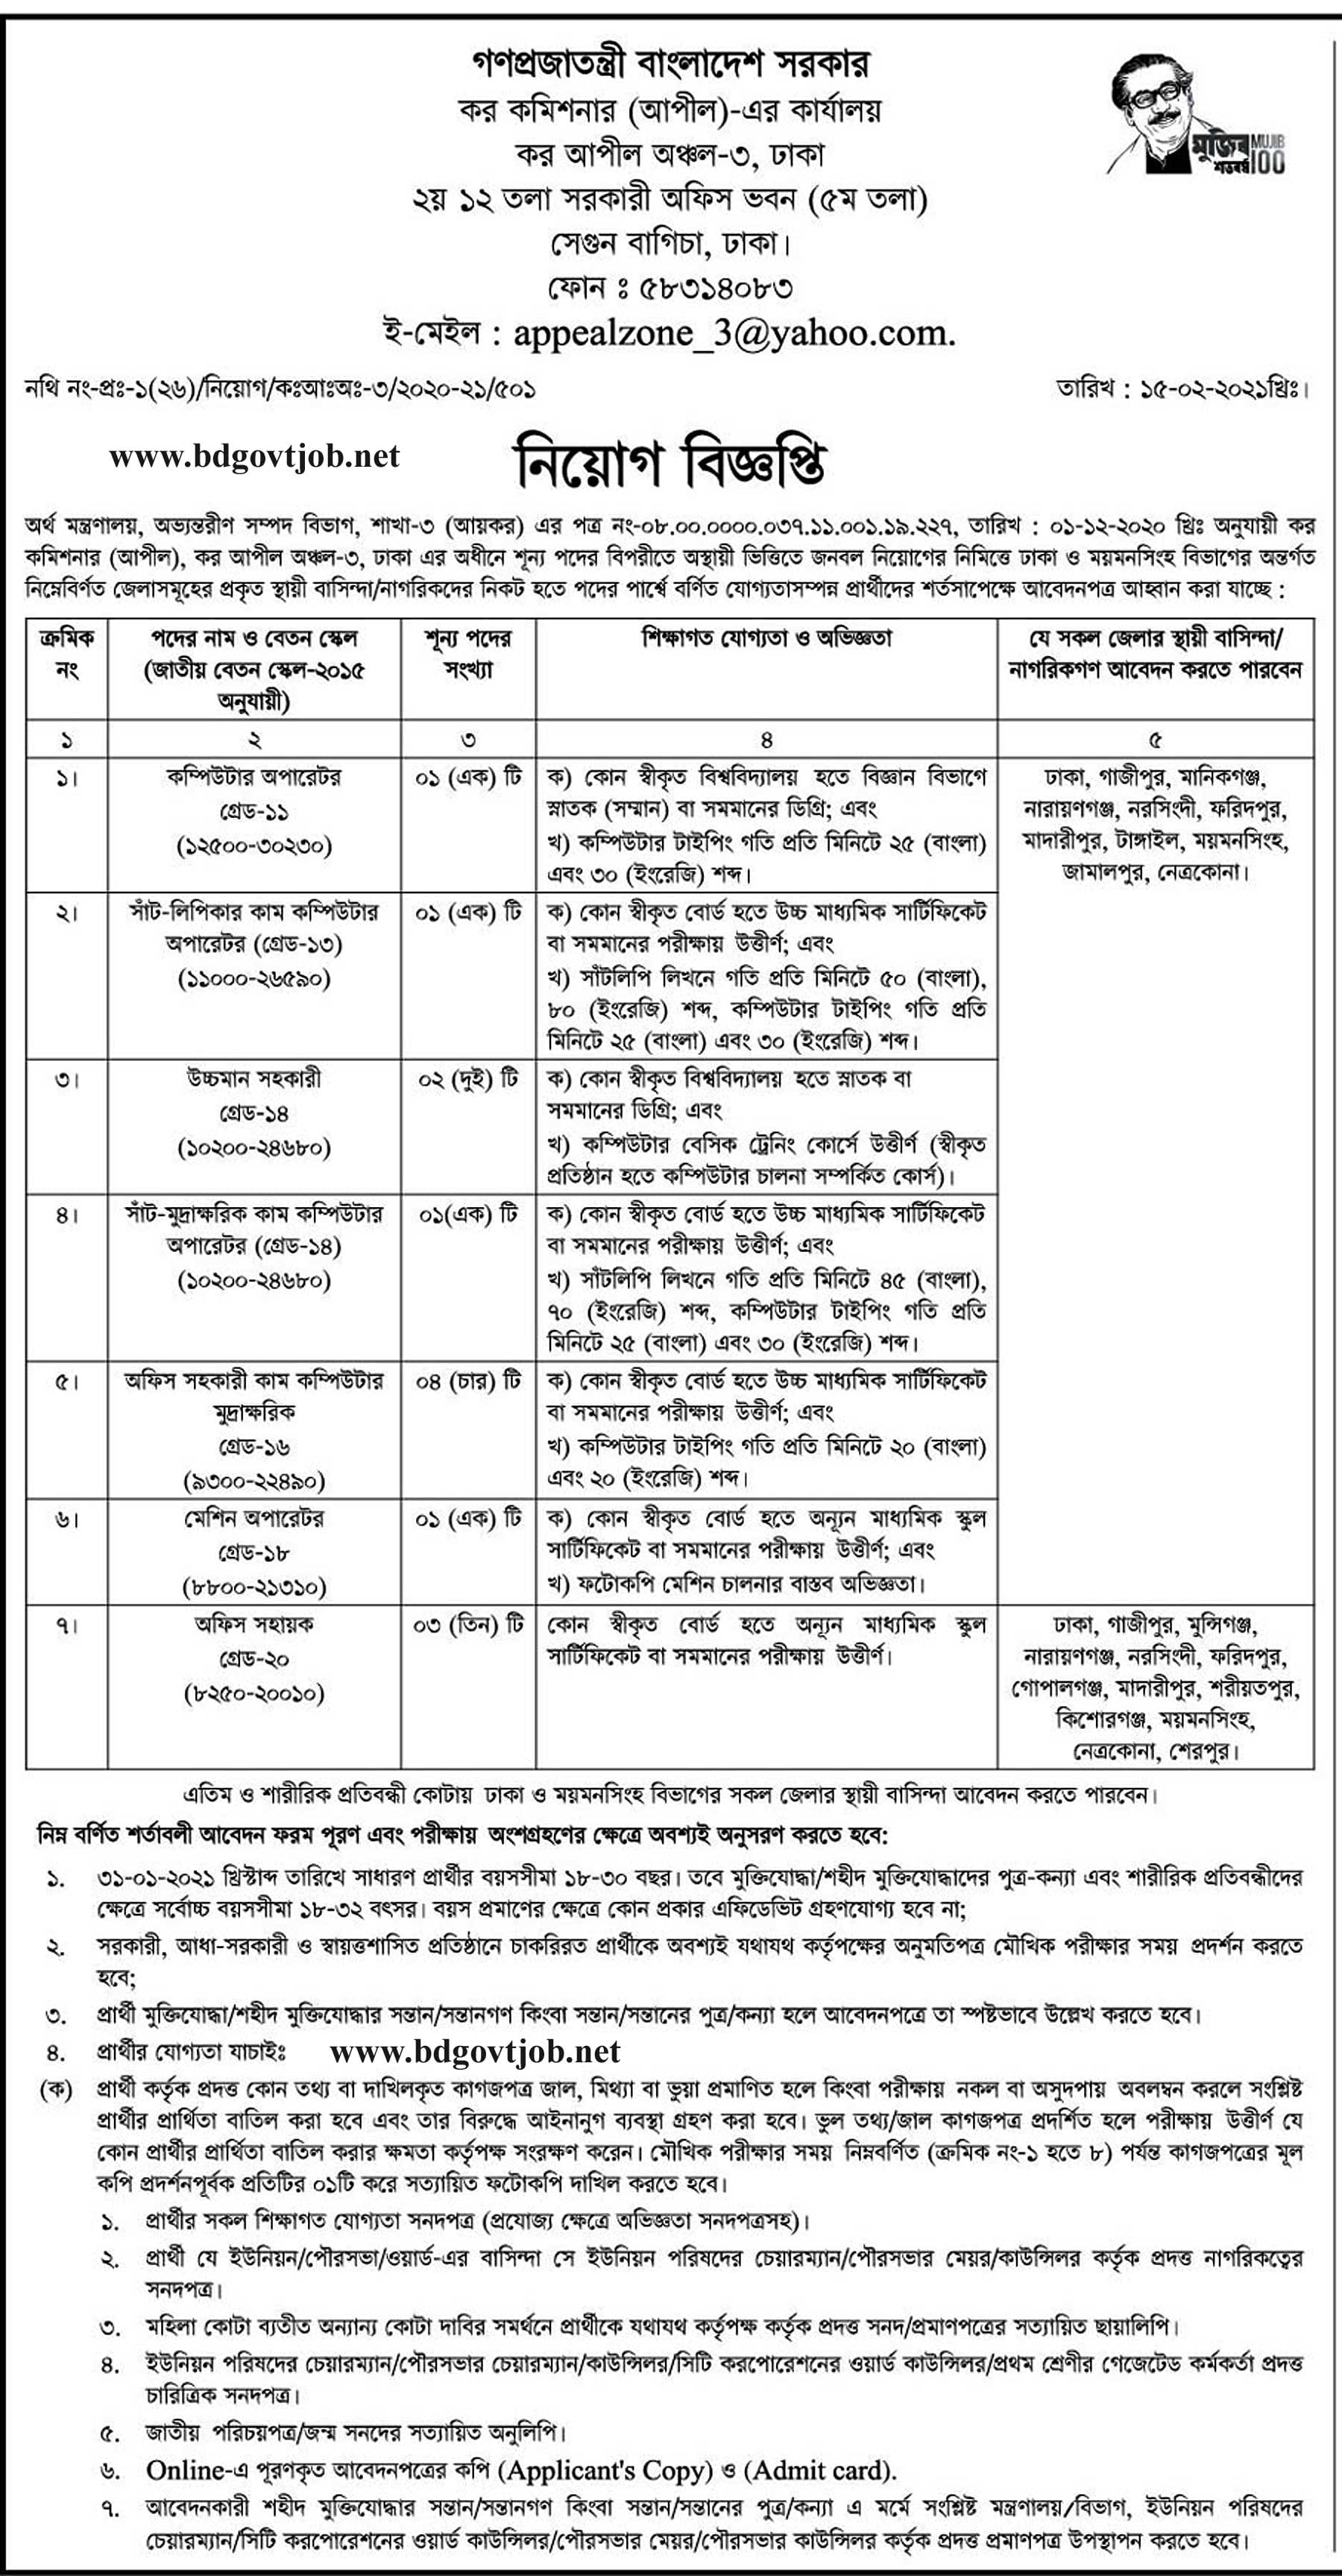 Tax Commissioner office Job Circular 2021